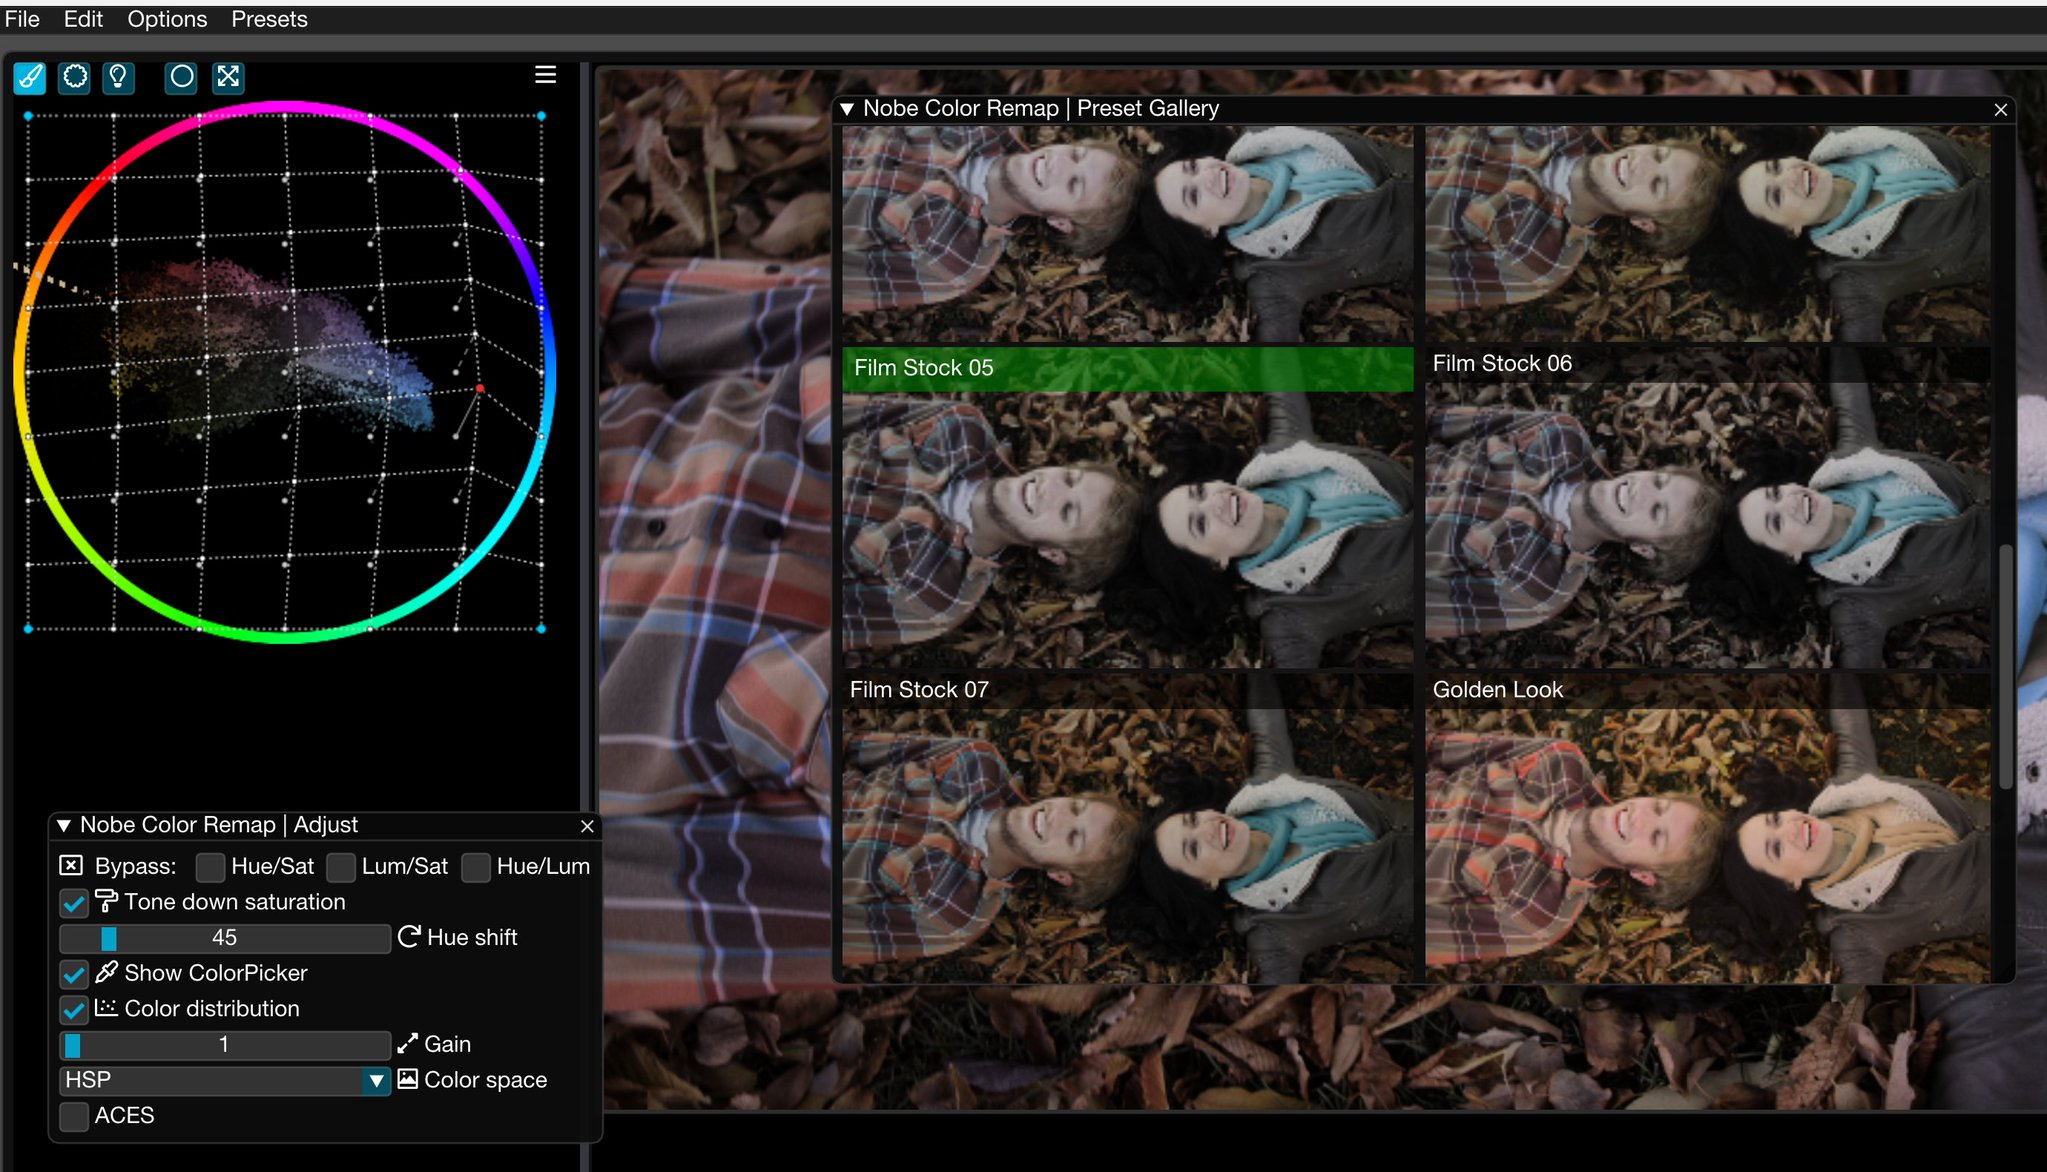 Nobe Color Remap for all your post-production tools. The original Color Warper 7